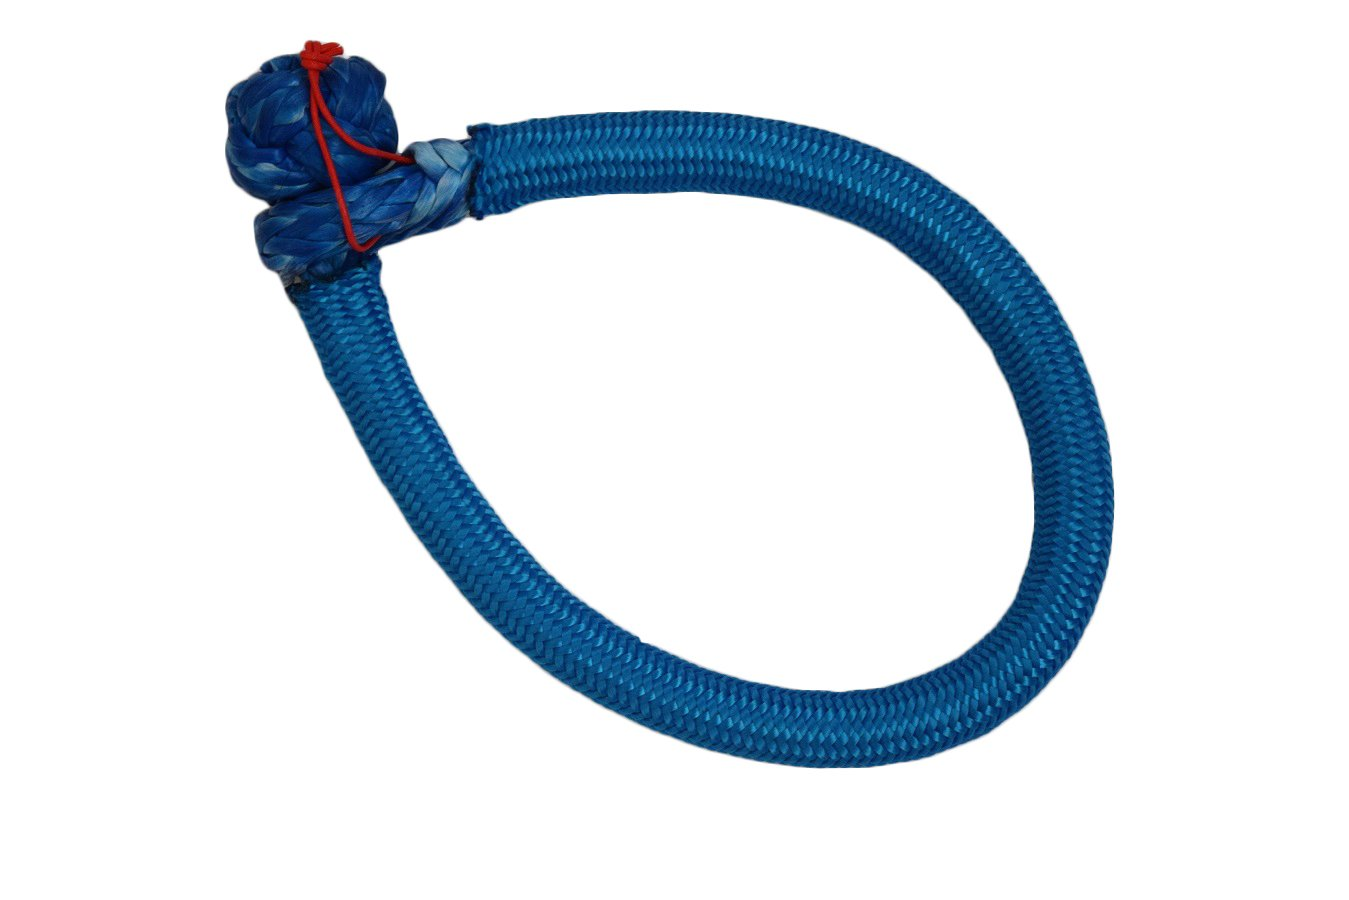 9mm150mm Soft Shackles for ATVs UTVs Parts ATV Winch Shackle Synthetic Shackle(Blue) QIQU